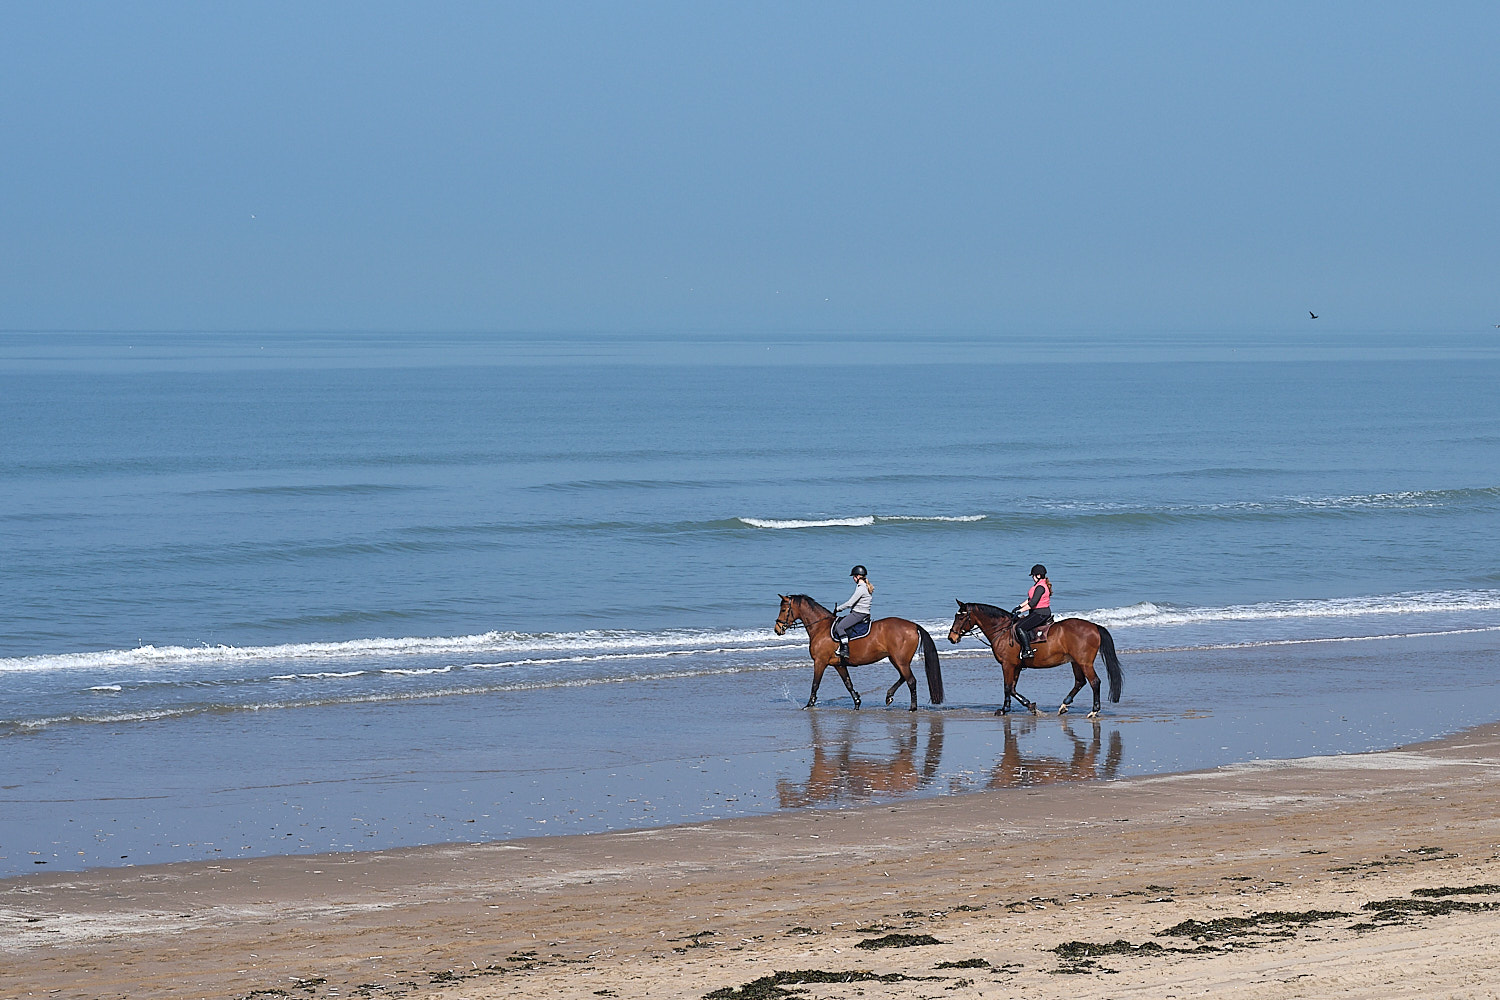 Two riders in horses at the beach shore in Noordwijk, Holland, The Netherlands